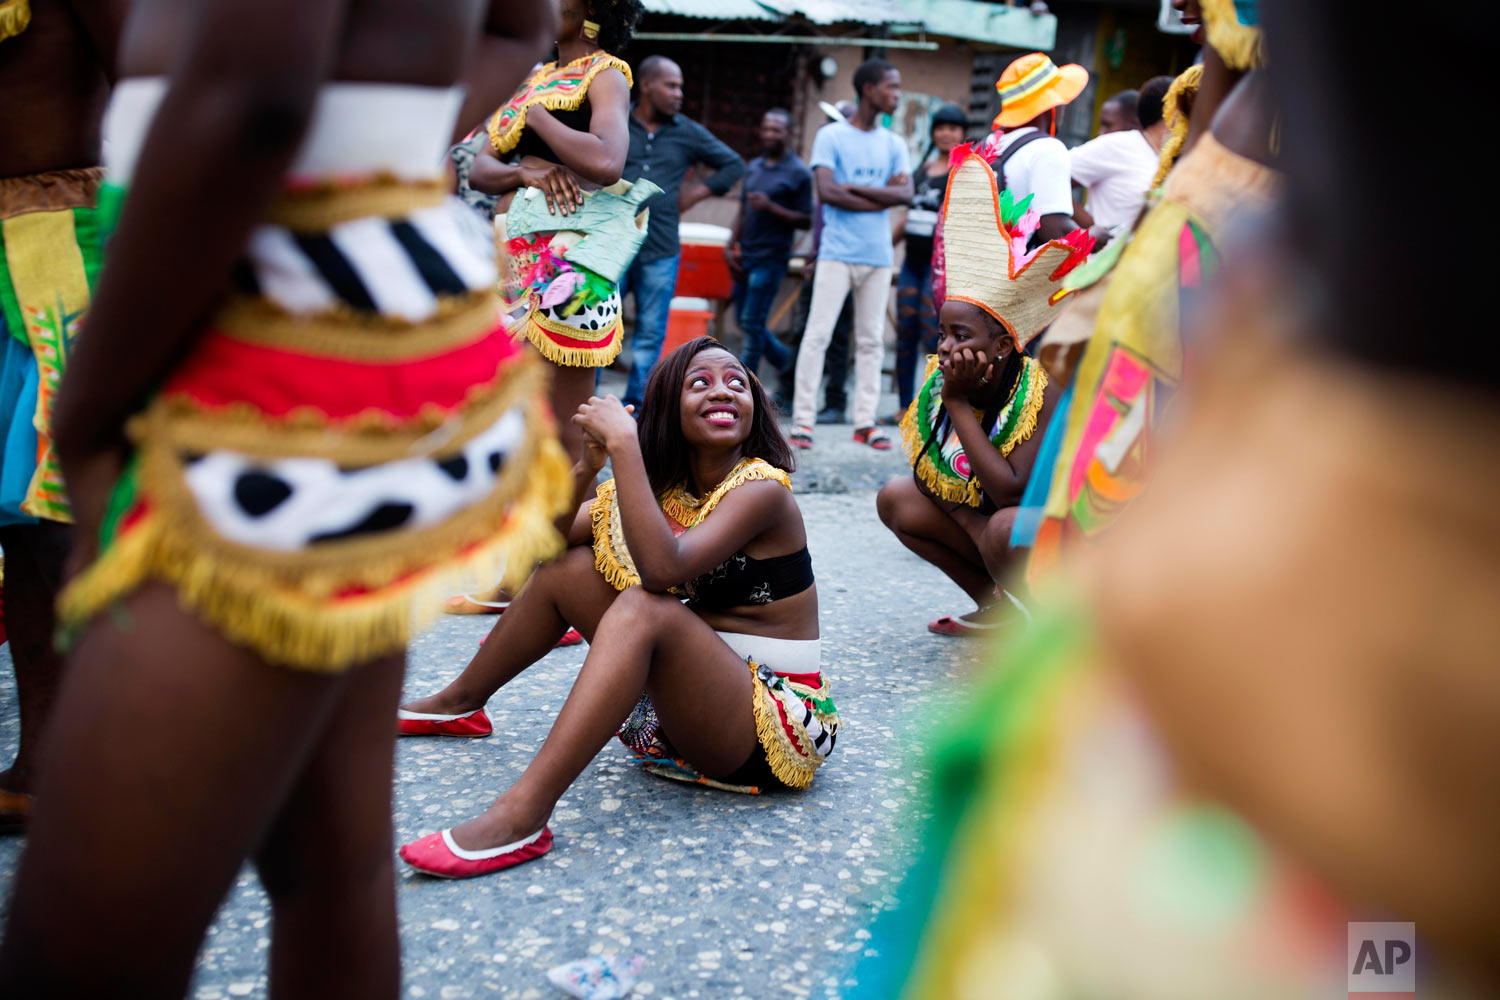 In this March 5, 2019 photo, revelers rest in the street during the Carnival parade in the Carrefour district of Port-au-Prince, Haiti. ( AP Photo/Dieu Nalio Chery)